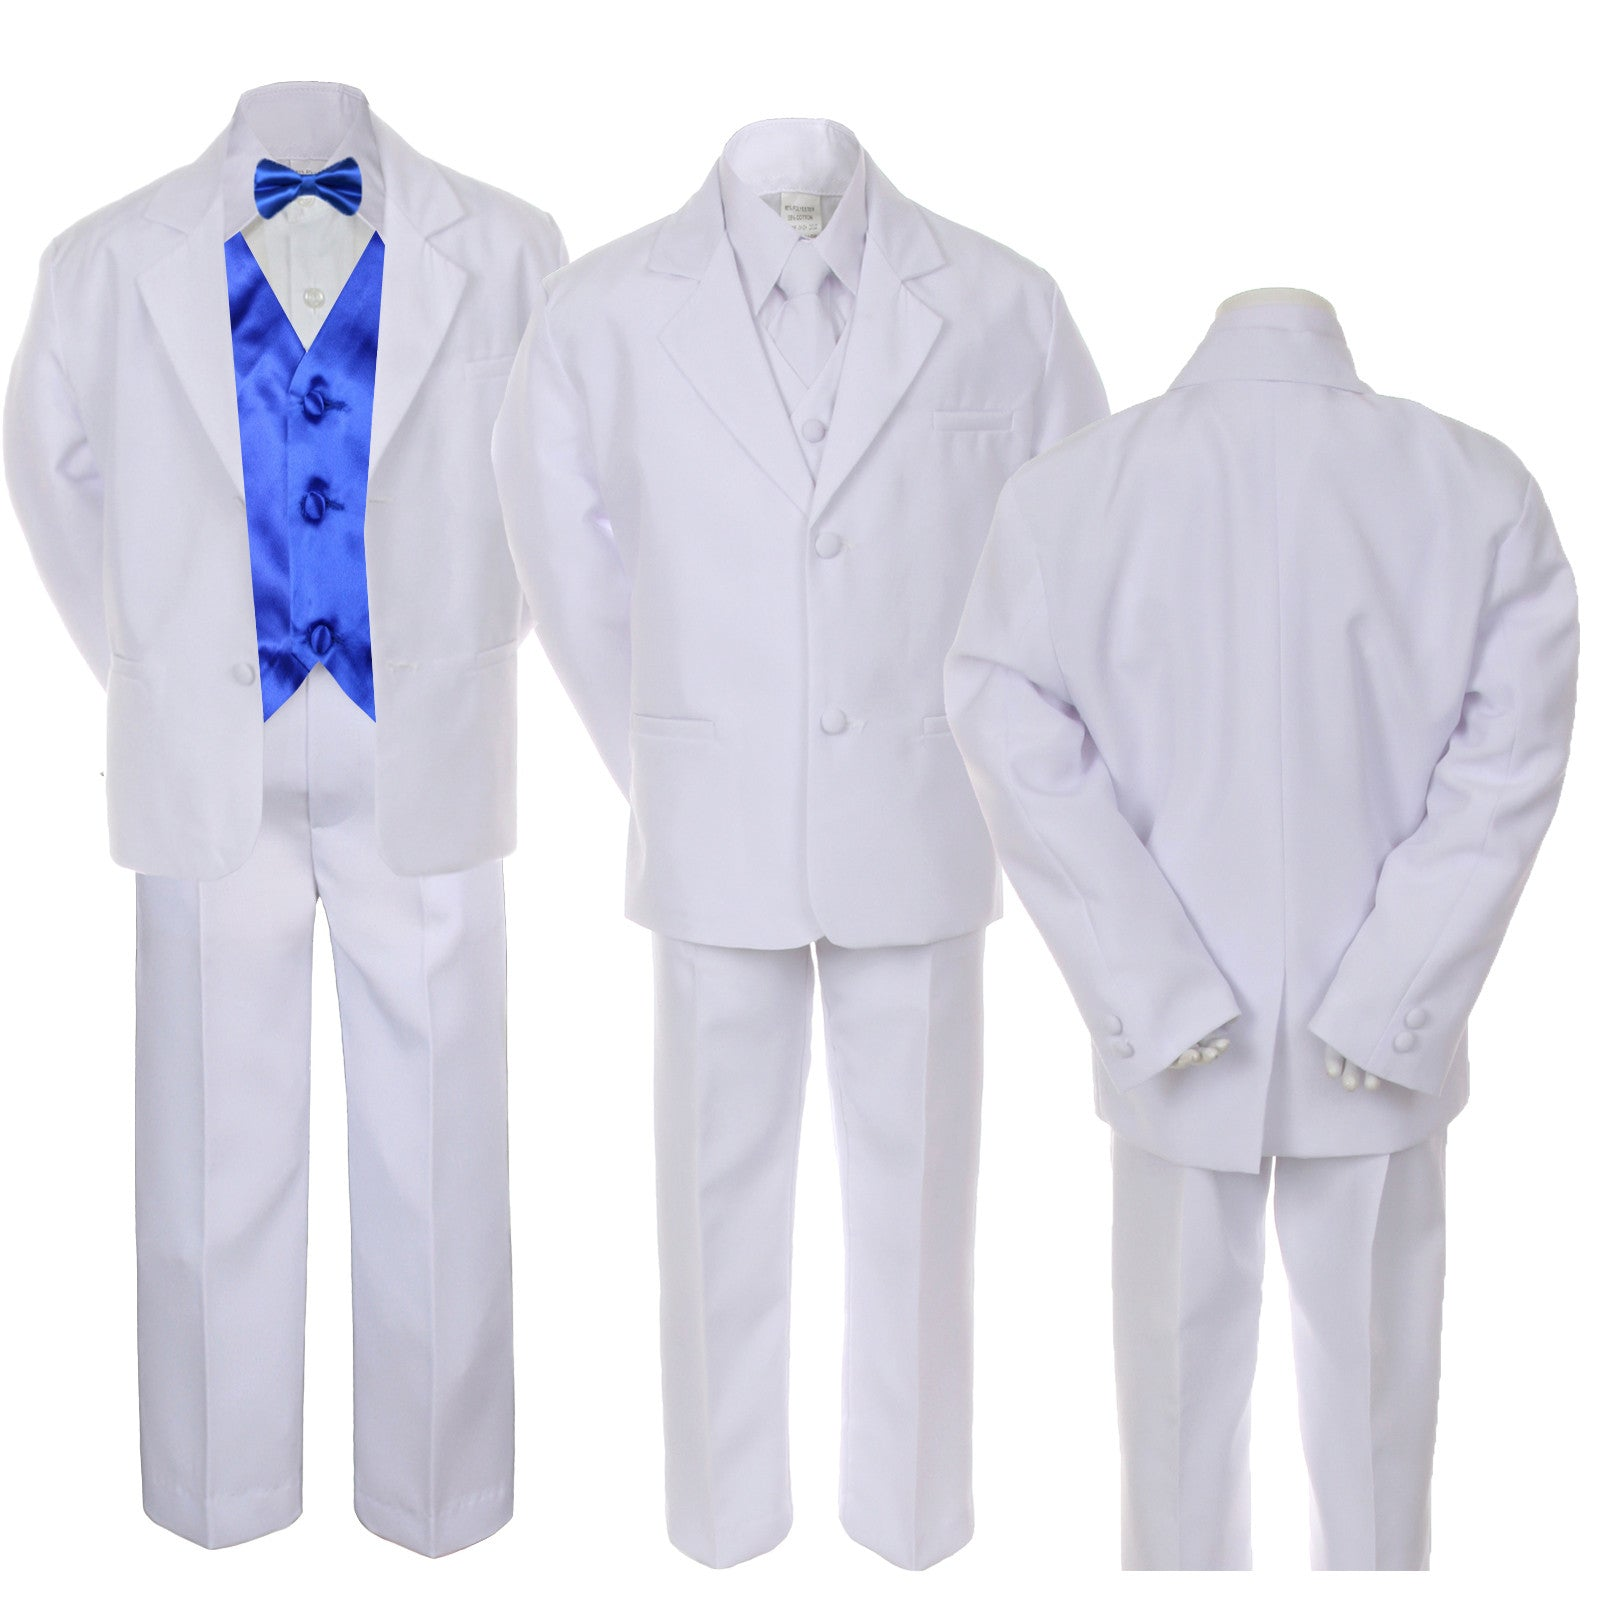 7pc Boy Kid Teen White Formal Wedding Party Suit Tuxedo ROYAL BLUE ...